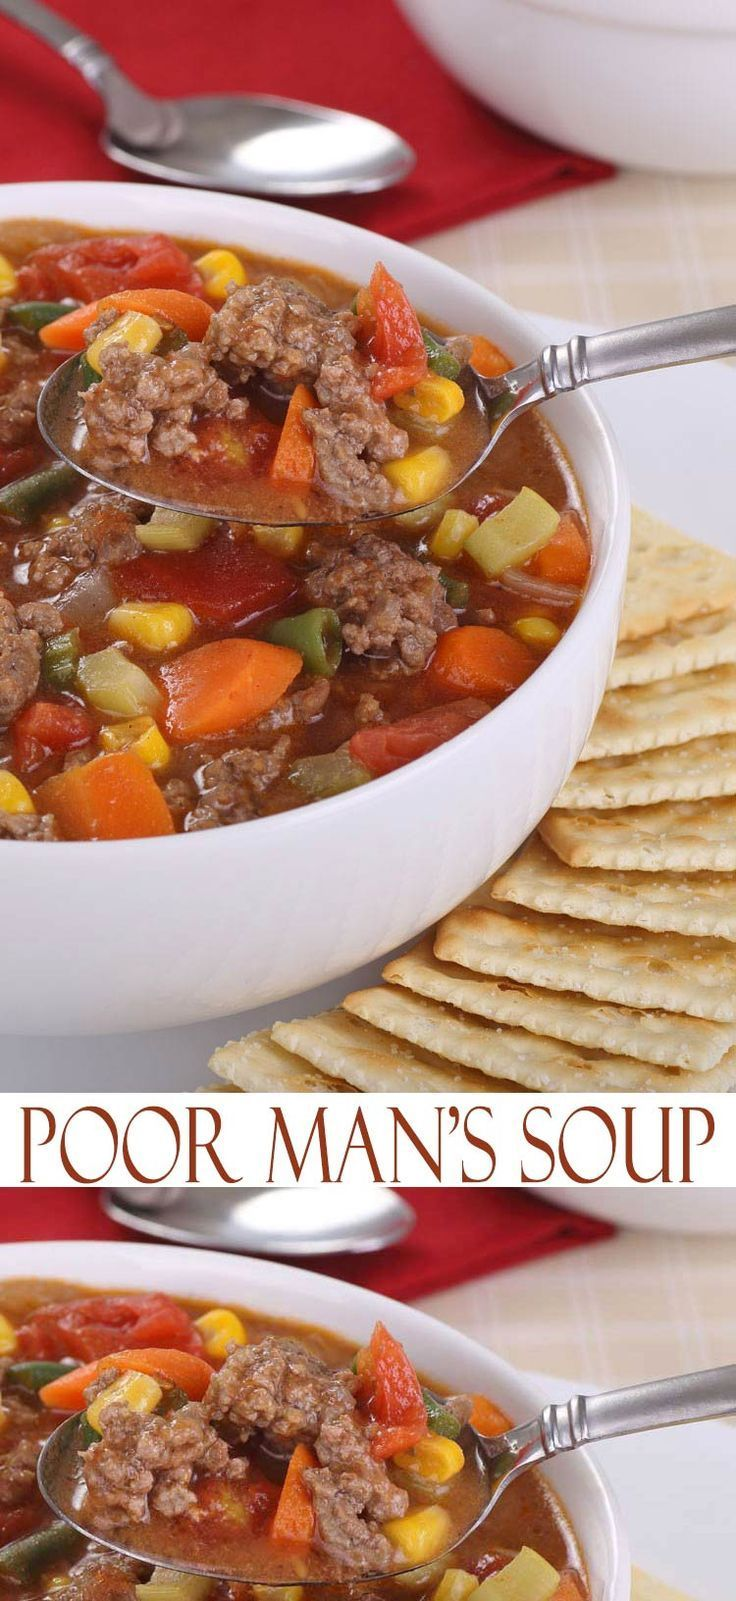 Poor Man's Soup - easy to make with ingredients that you probably already have at home. Feed a family on a budget with this easy soup recipe.